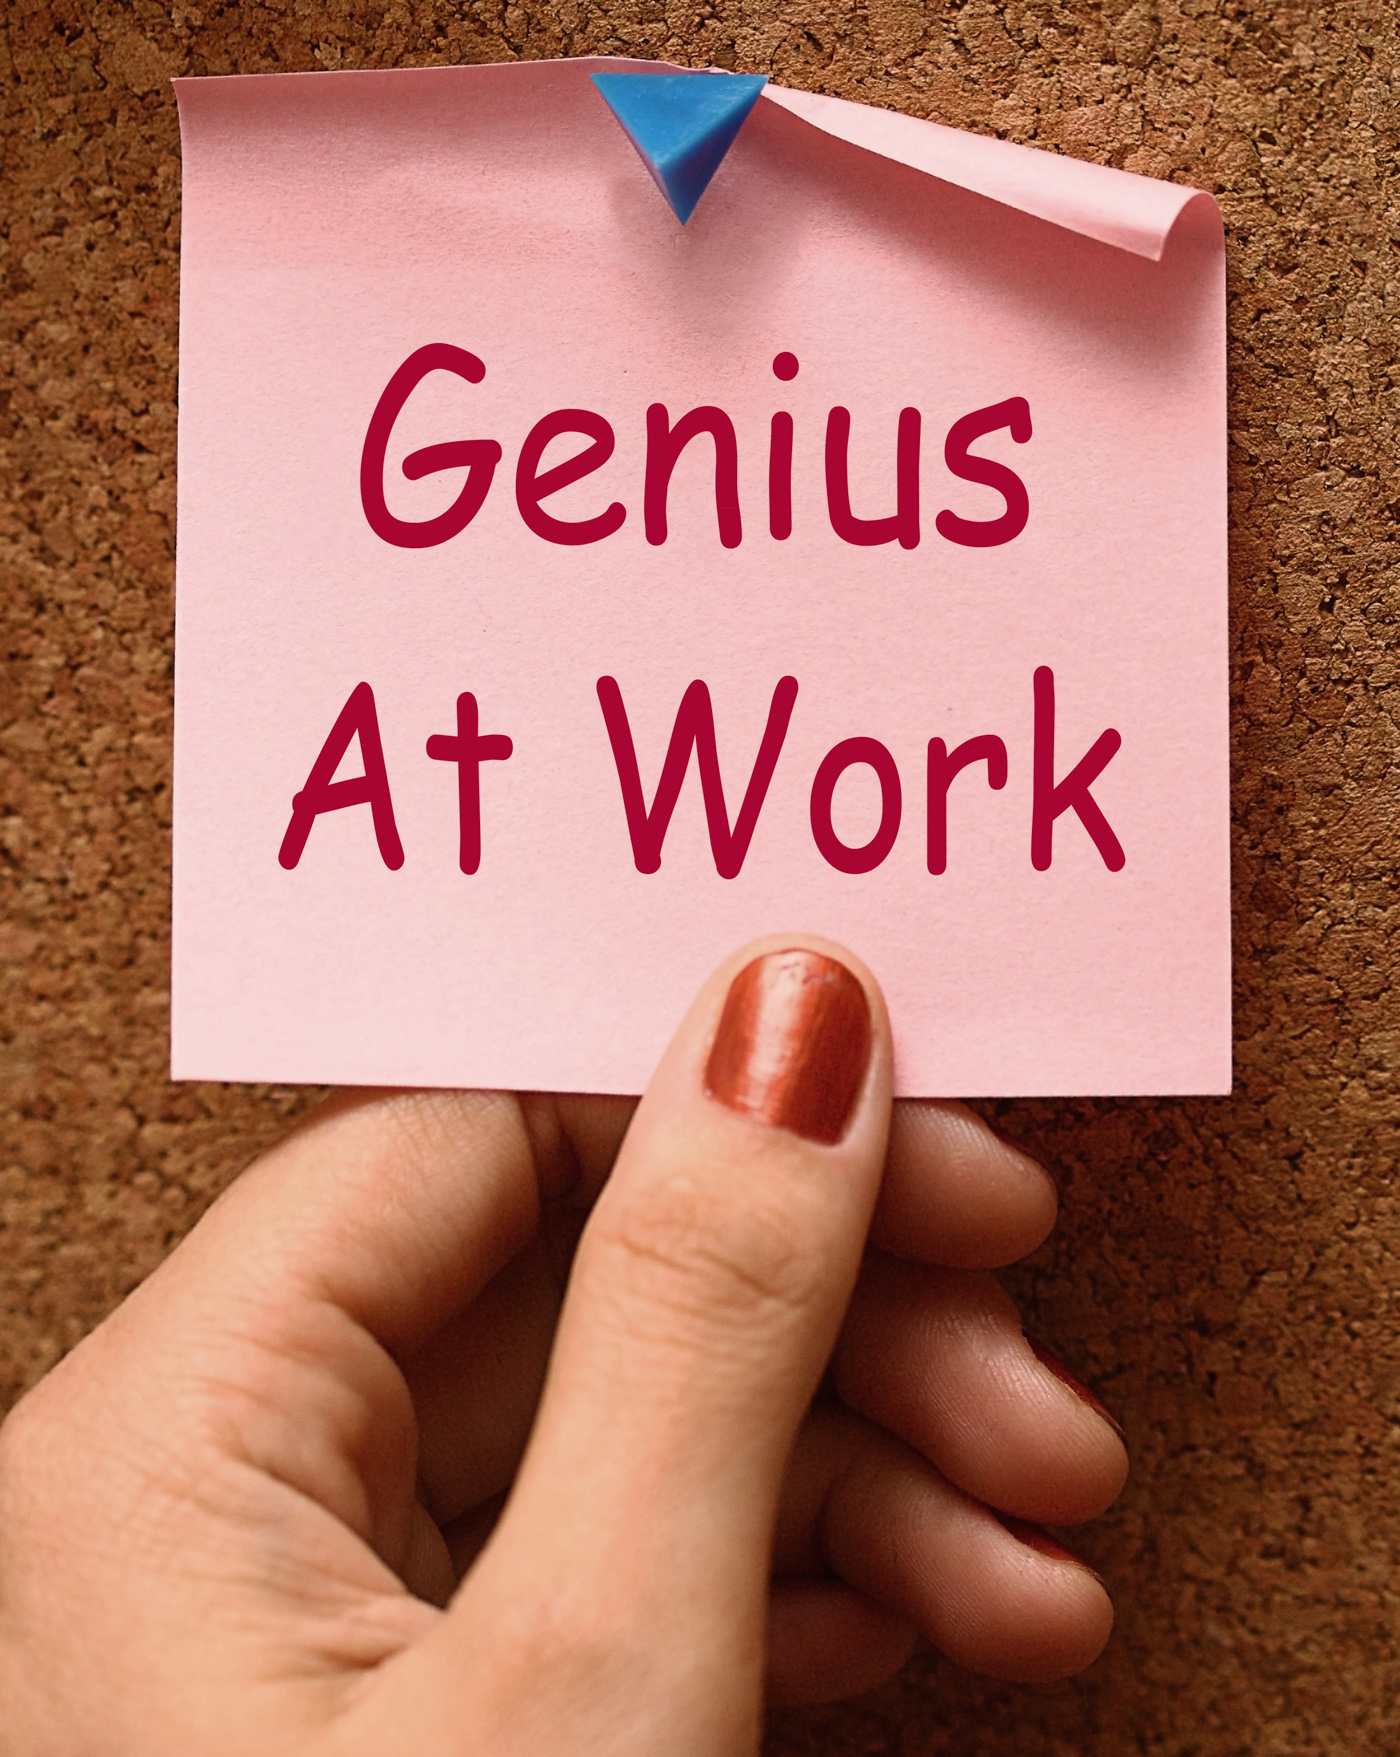 Genius At Work Means Do Not Disturb, Brilliant, Competency, Competent, Experienced, HQ Photo